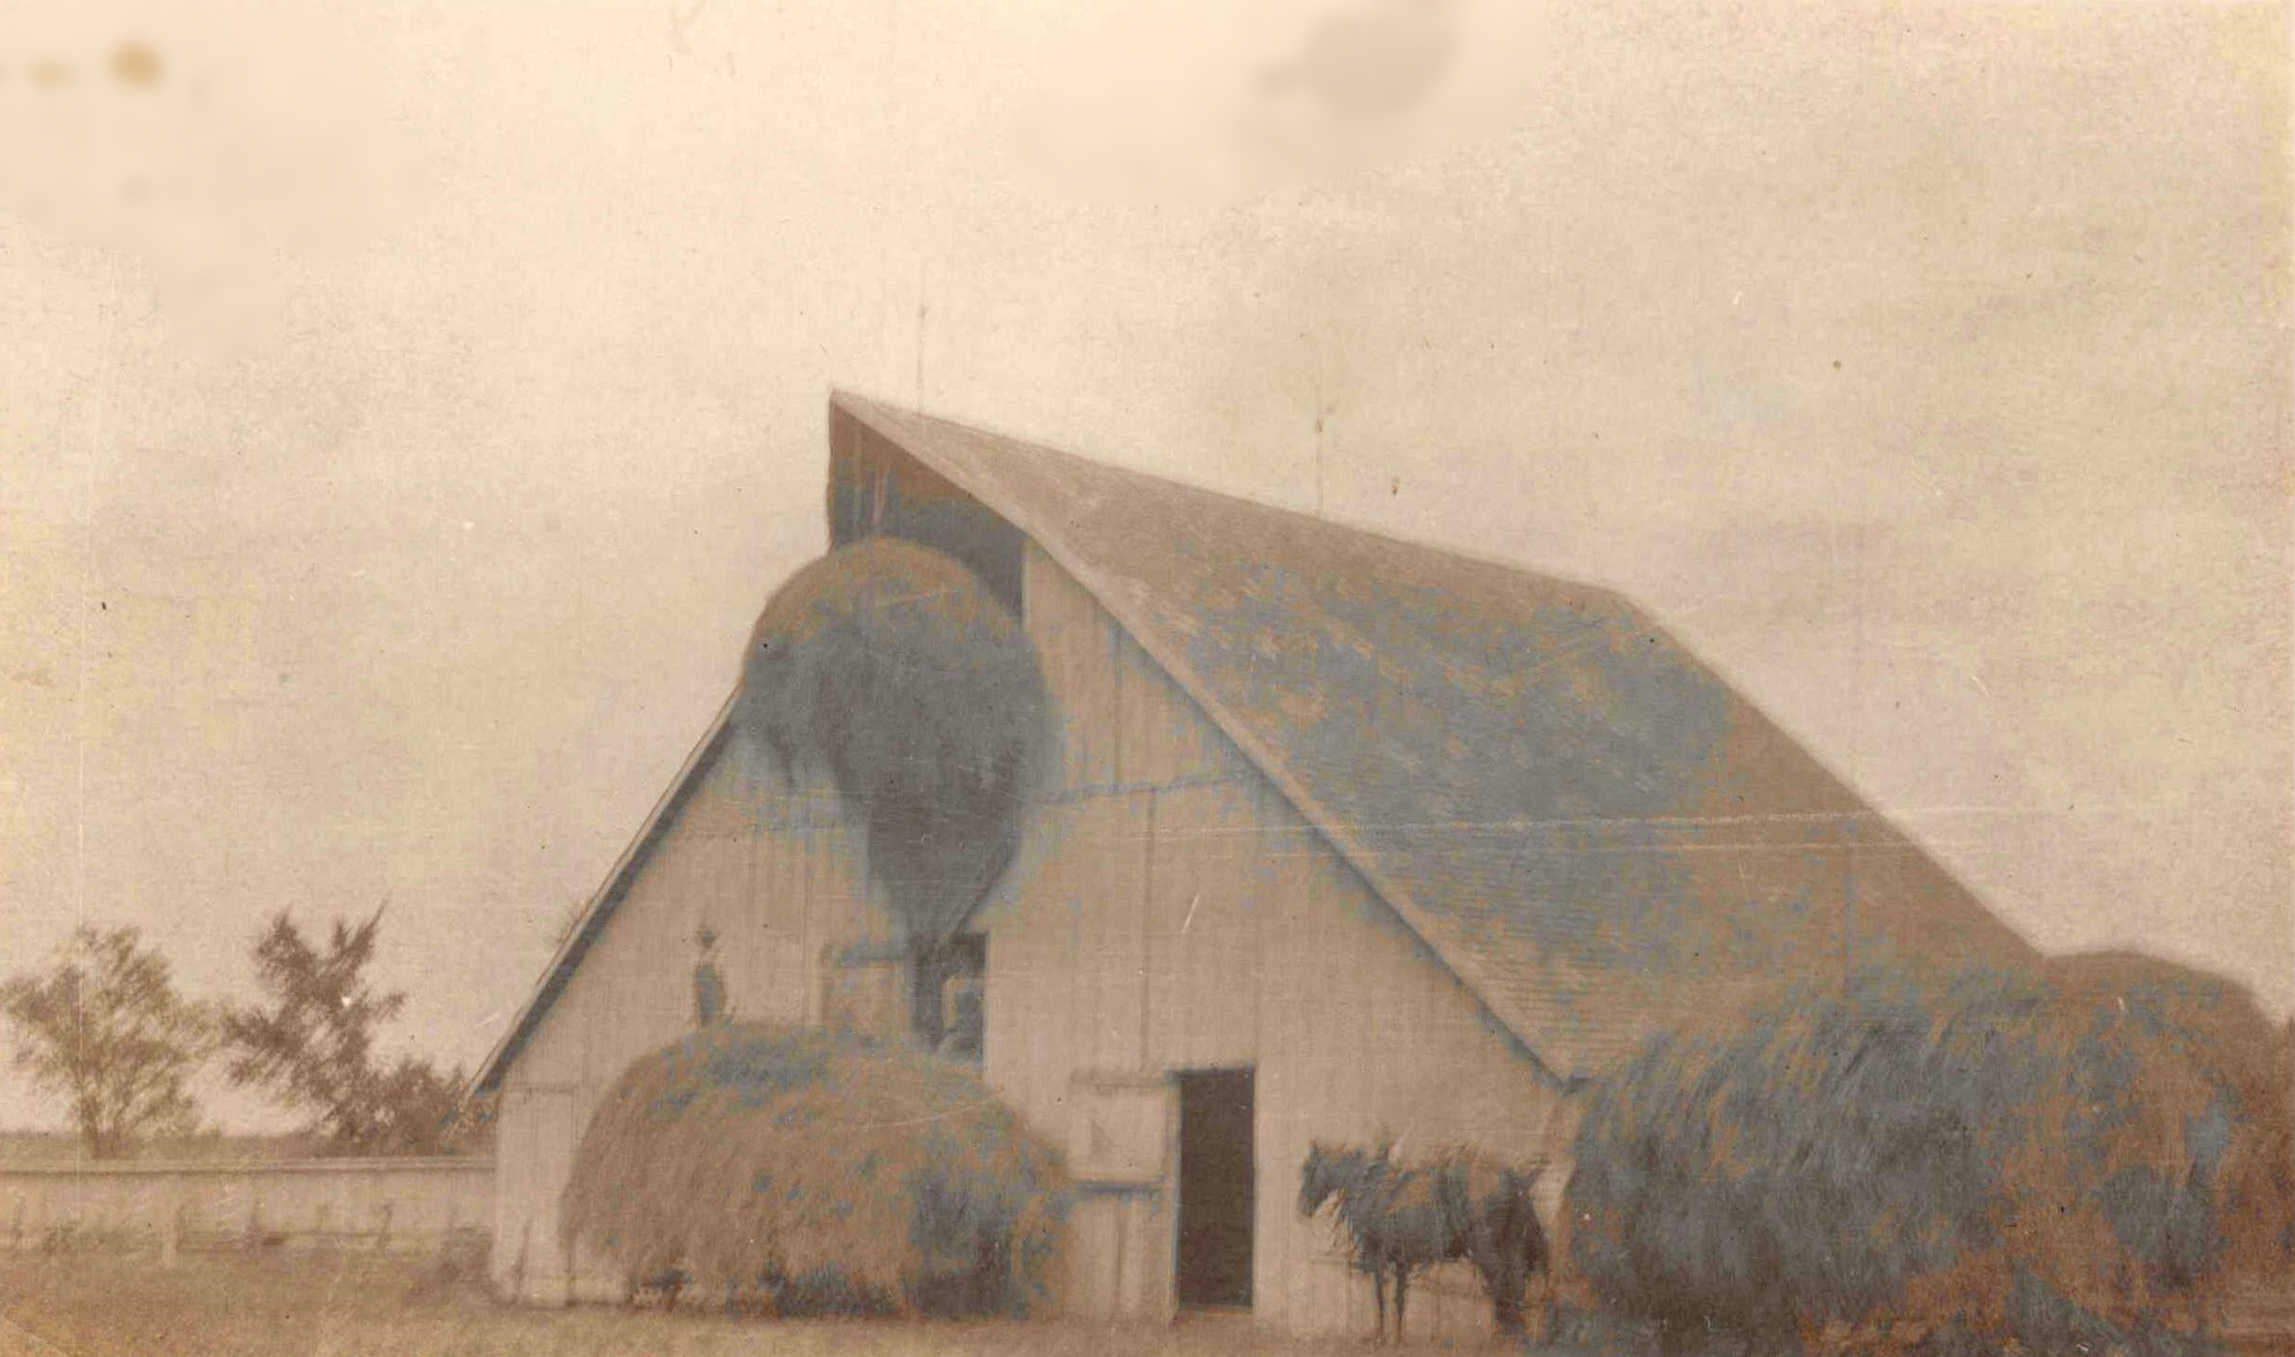 Howerton Farm, circa 1920